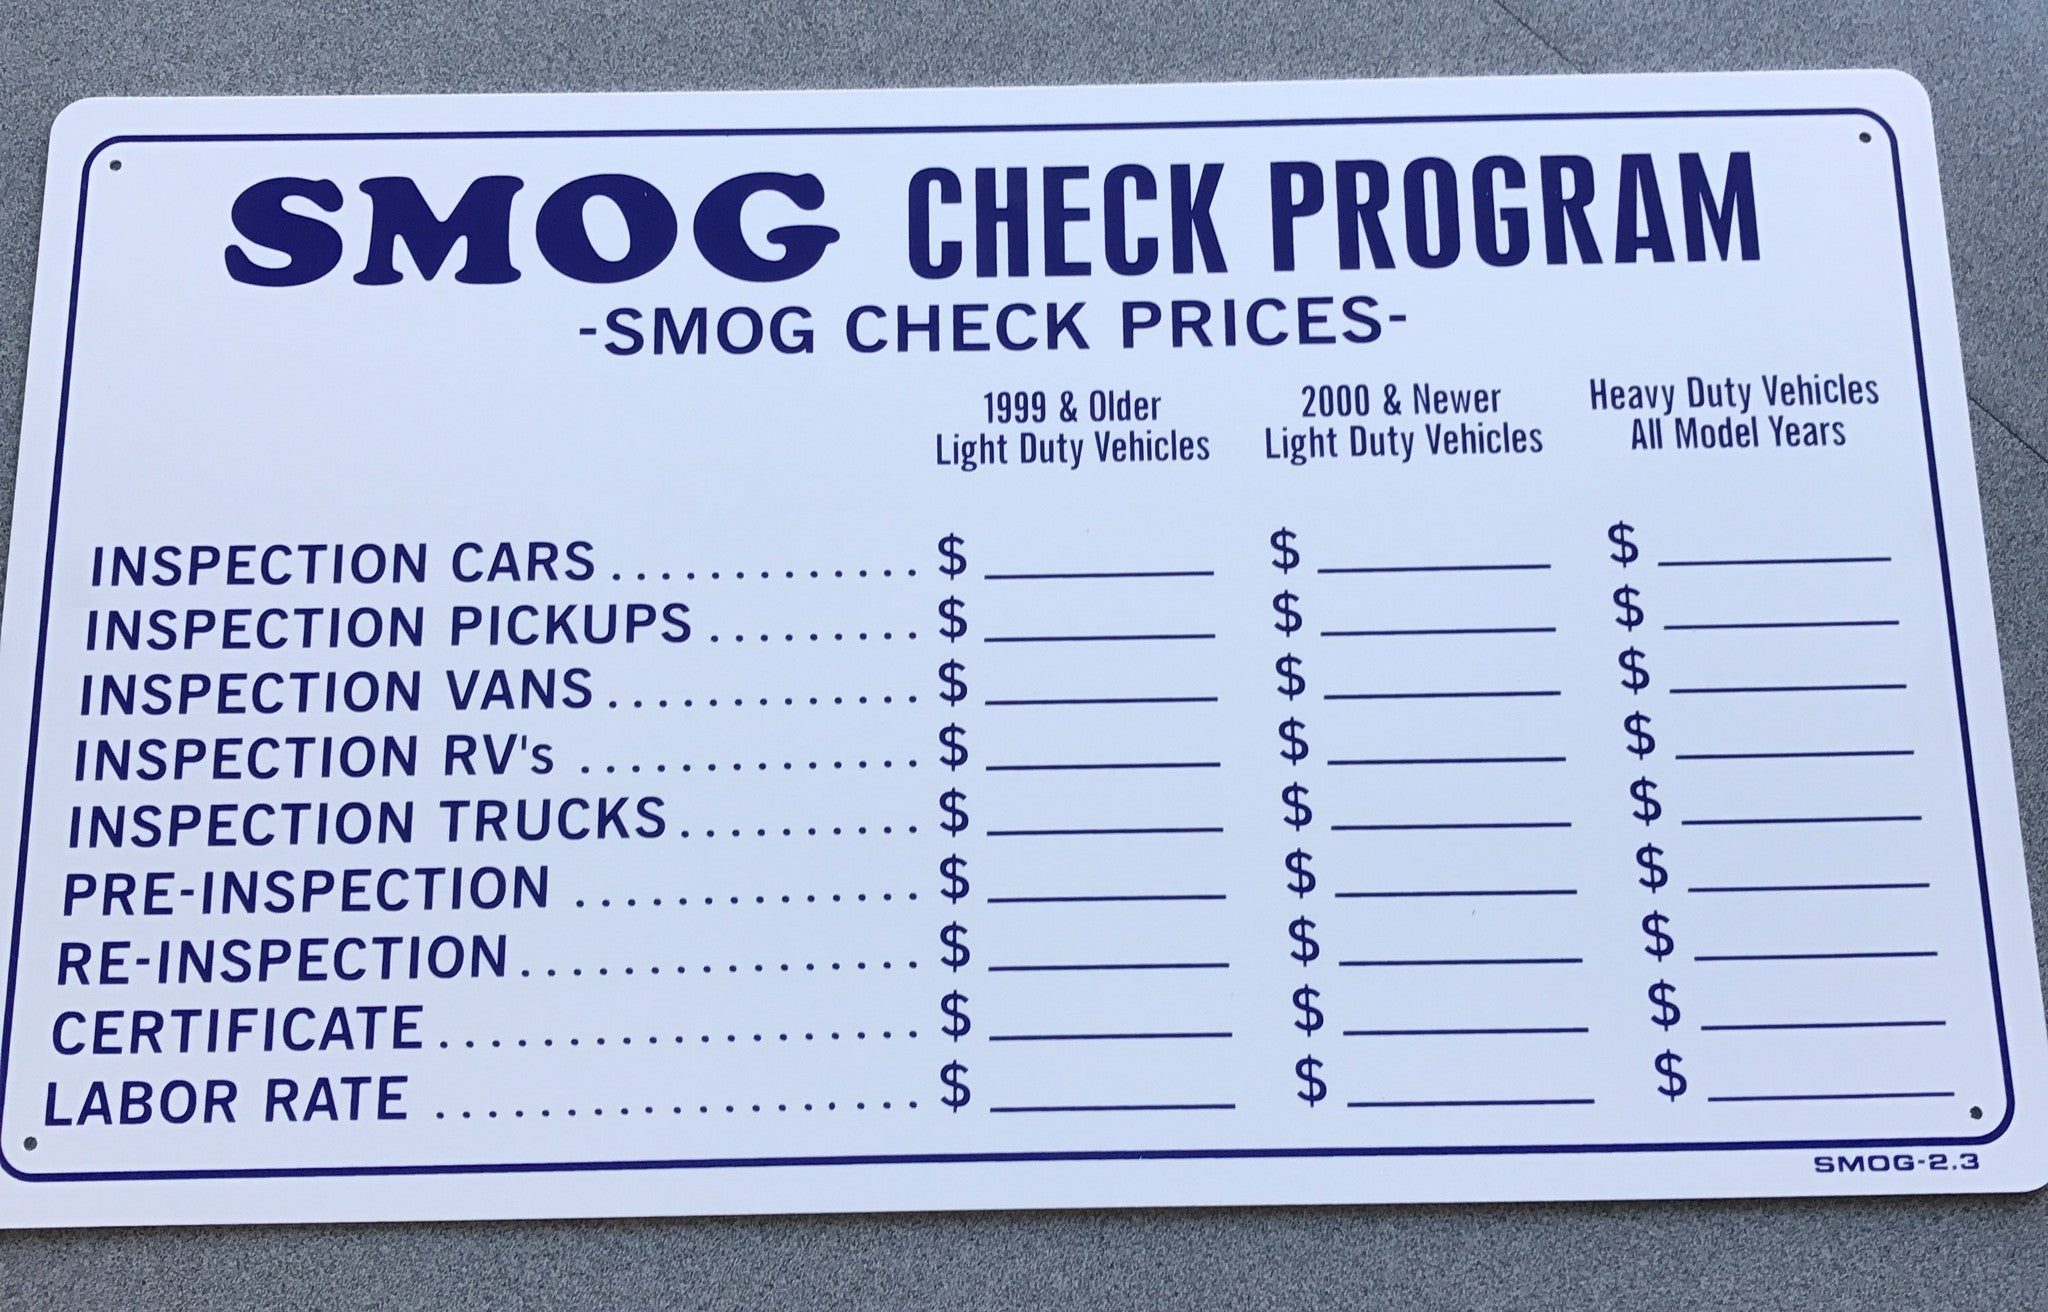 Smog Check Prices Near Me >> Updated 2017 Smog Check Prices Sign 13 X 24 Smog 2 3 877 438 7761